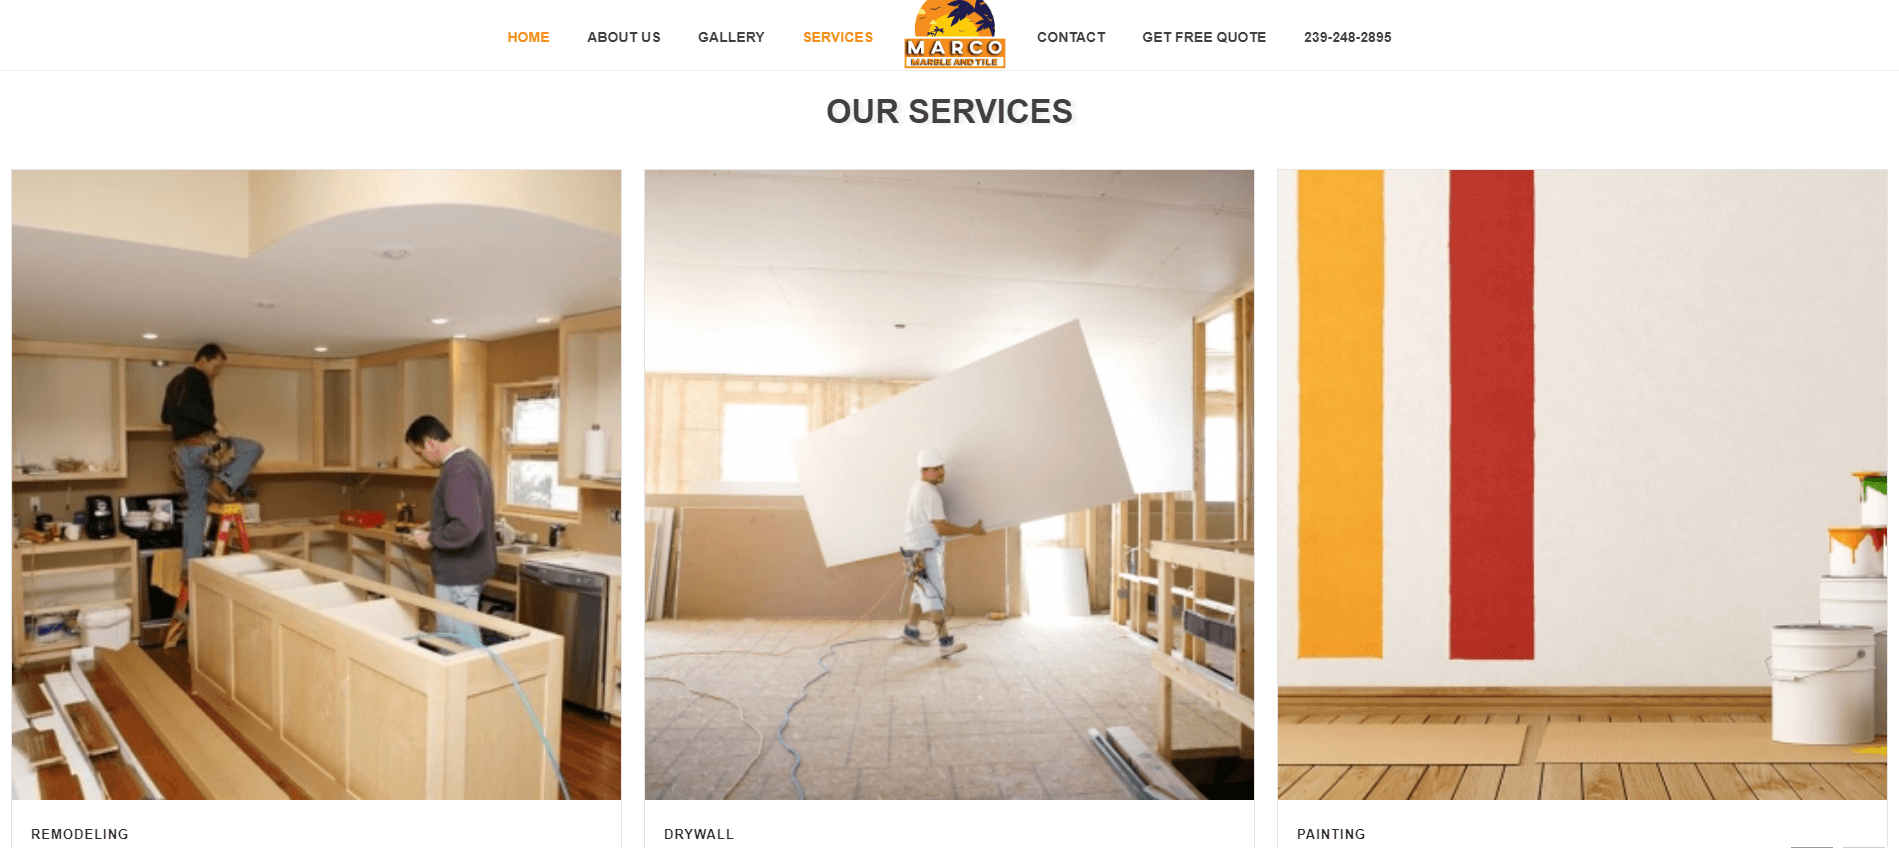 marco marbe and tile services page